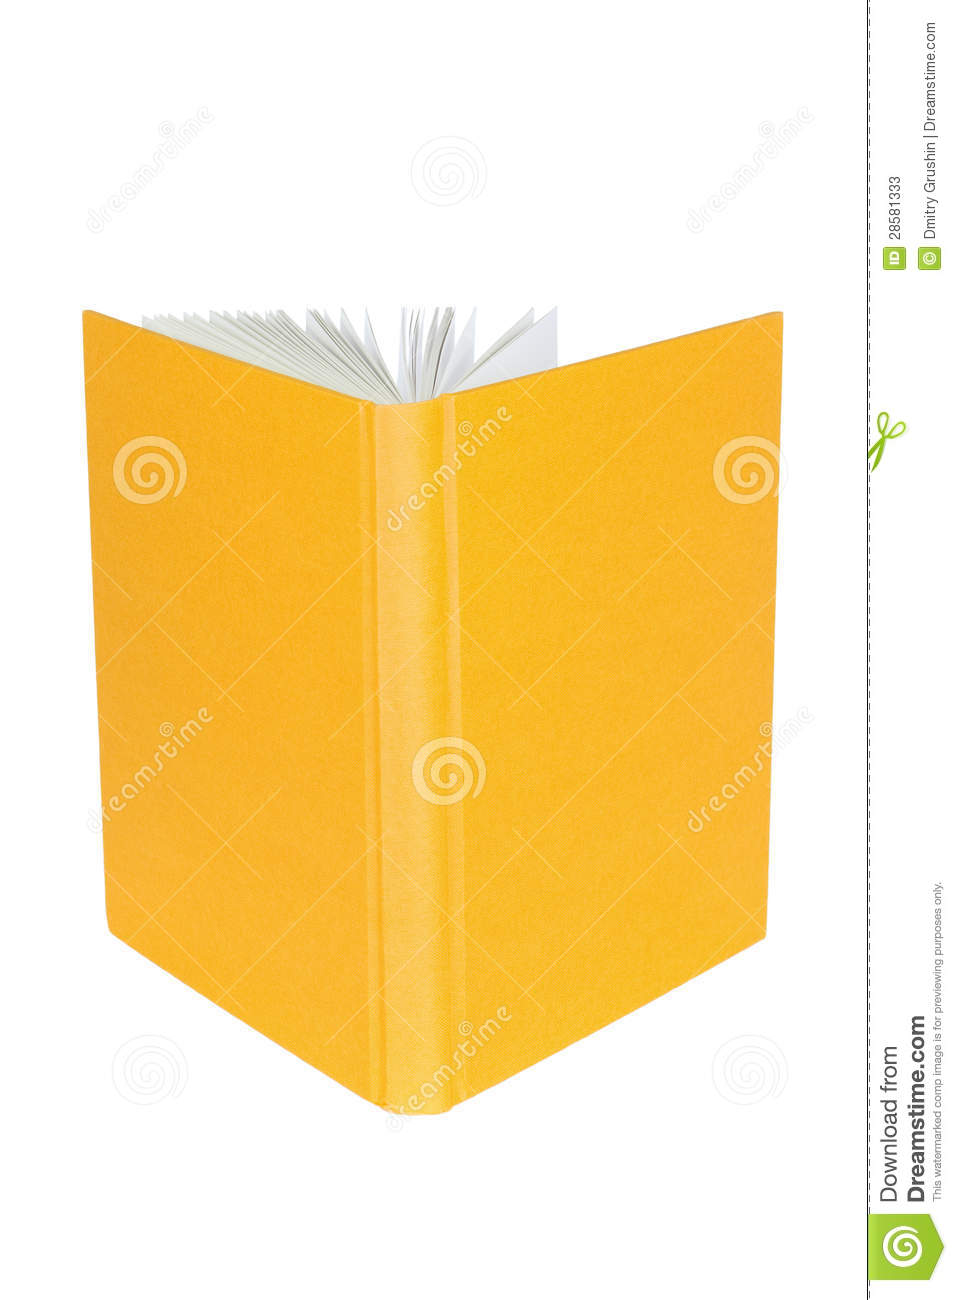 a review of the book yellow star Find helpful customer reviews and review ratings for the yellow star (corgi books) at amazoncom read honest and unbiased product reviews from our users.